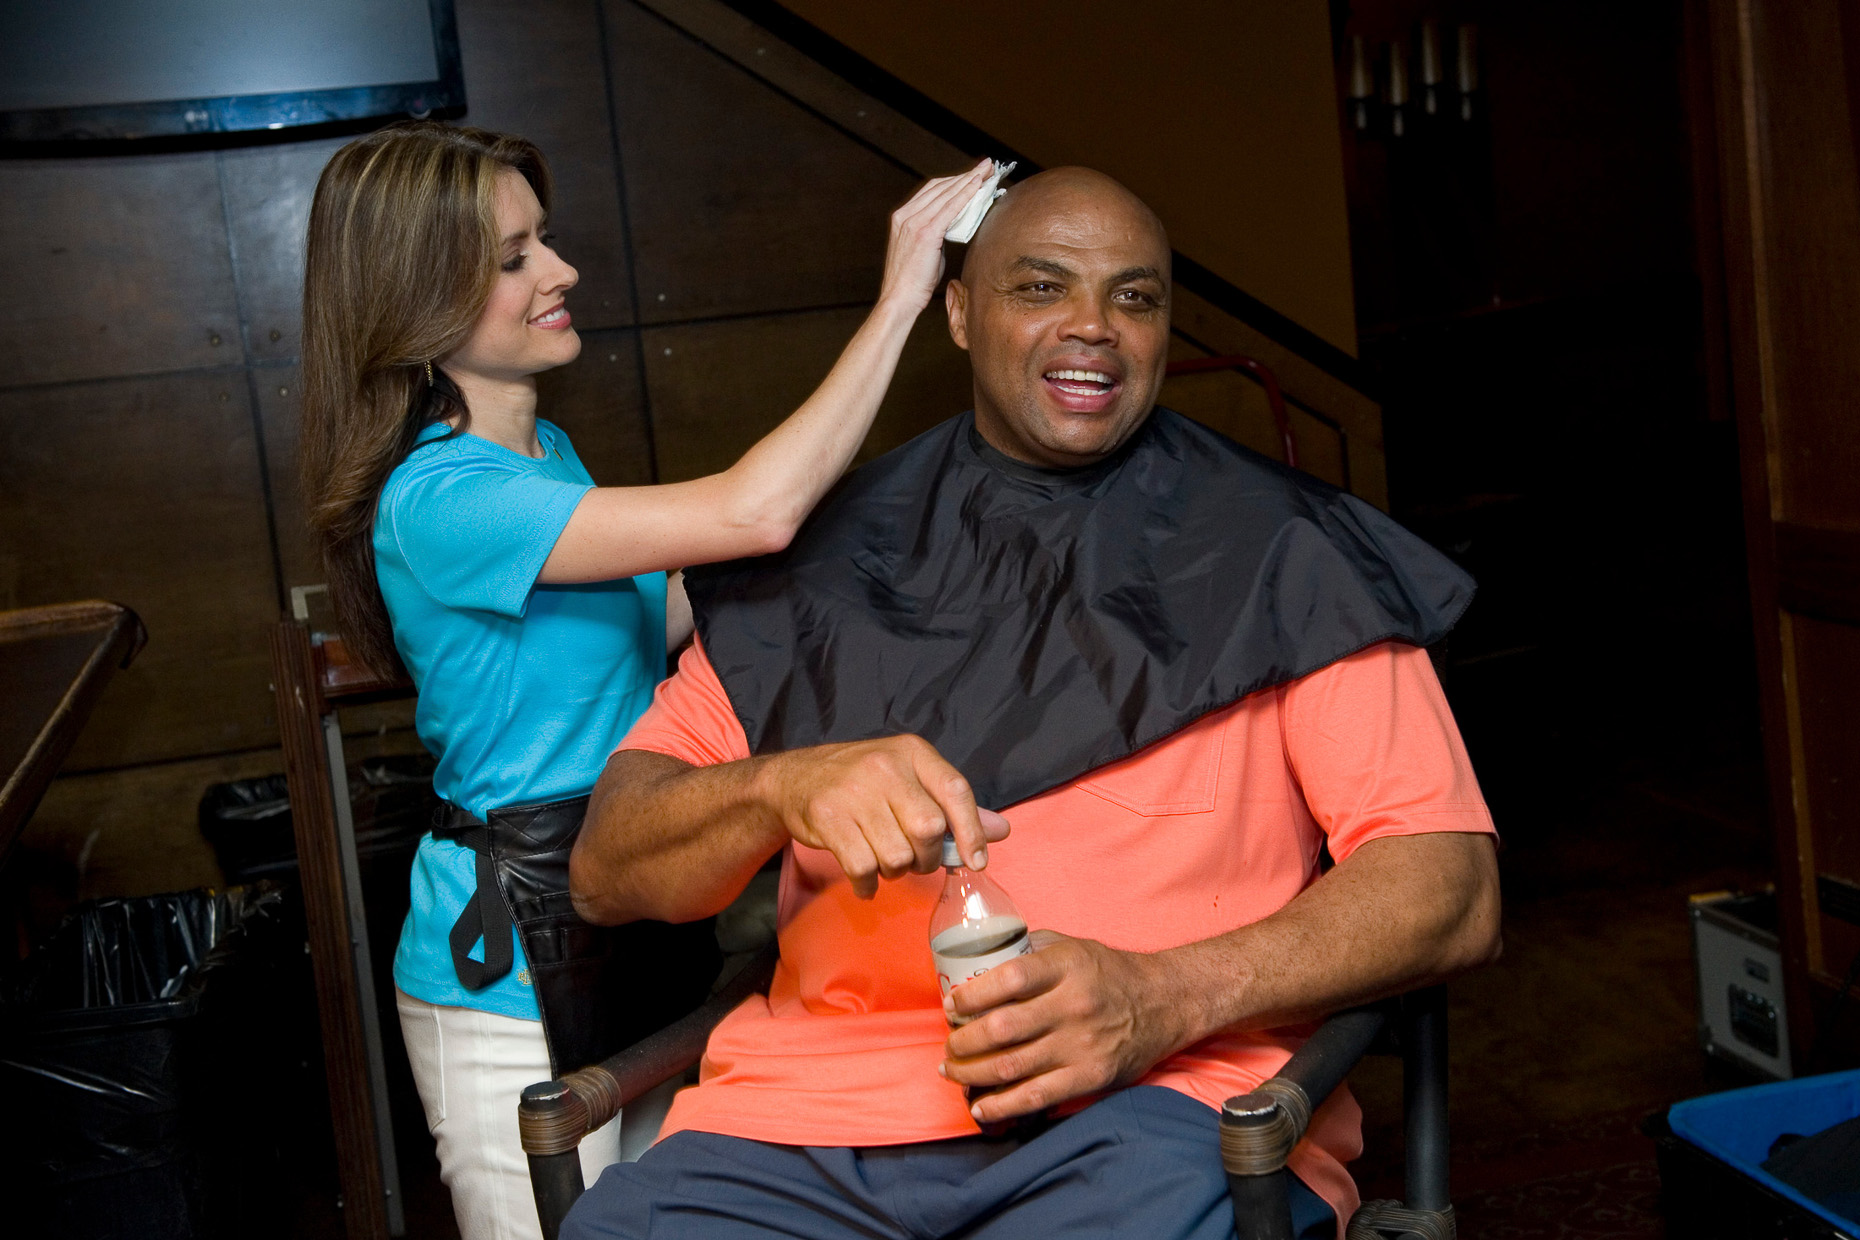 charles_barkley_golf_channel_makeup_meredith_boyd_atlanta_artist_celebrity